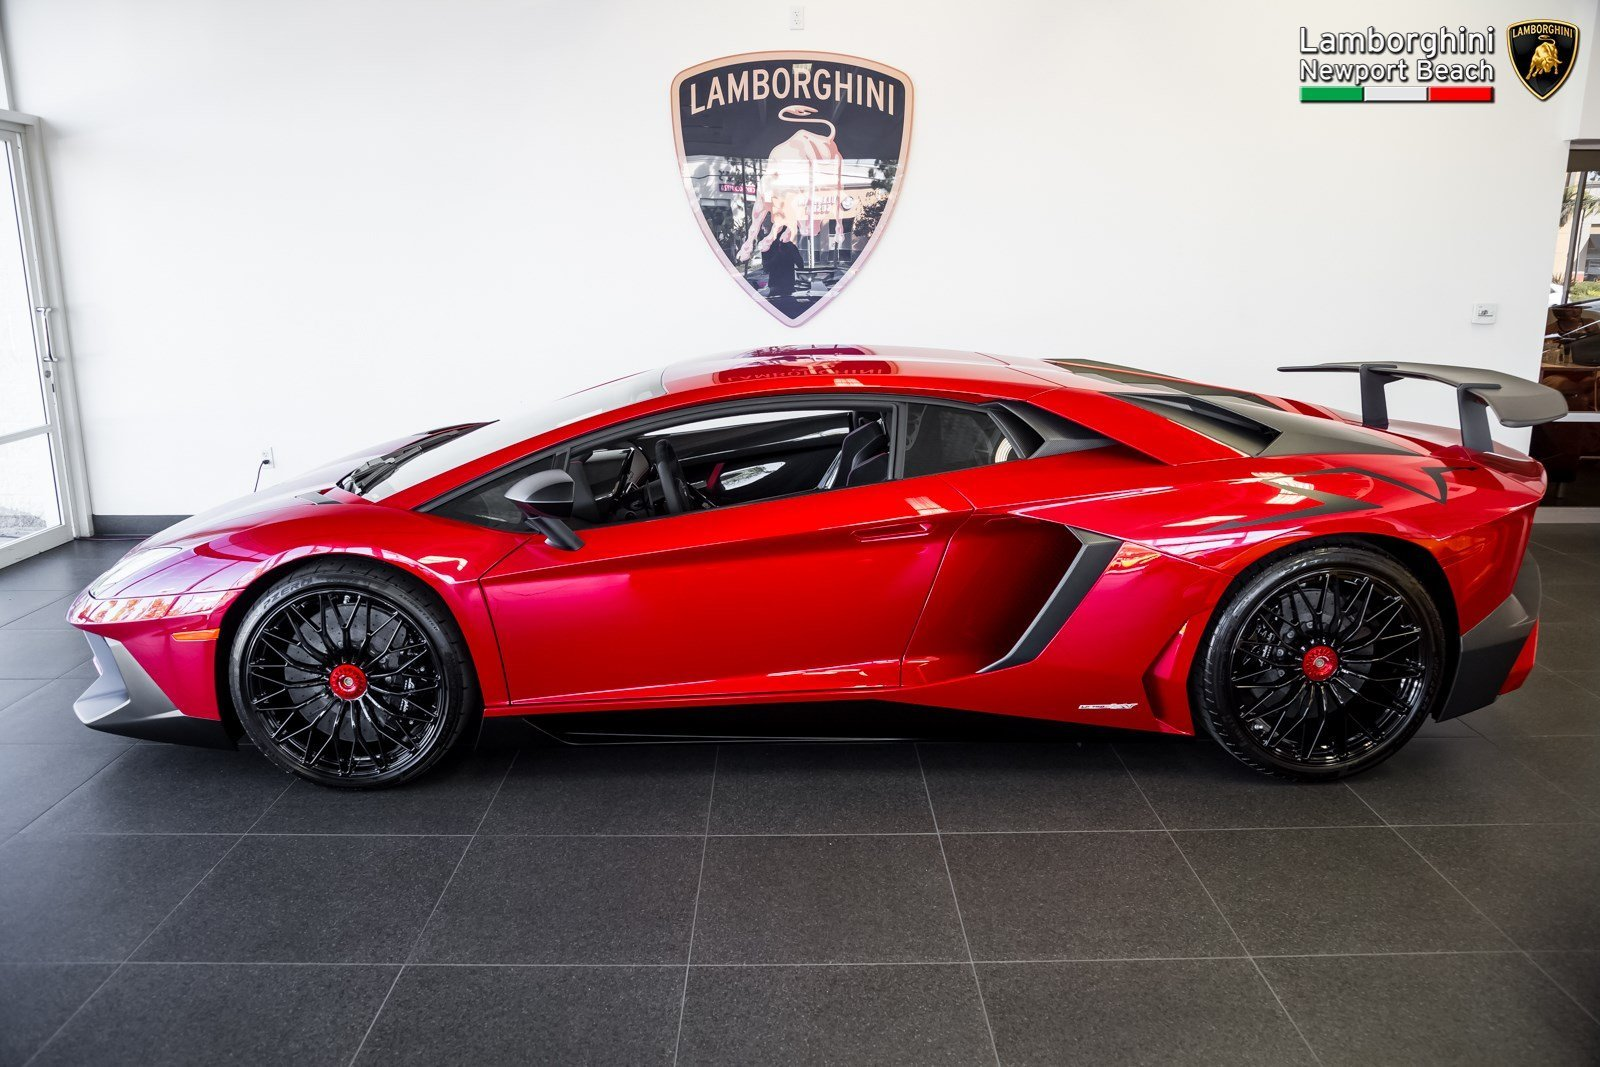 2016 Lamborghini Aventador Lp 750 4 Superveloce Coupe Cars Supercars Red Wallpaper 1600x1067